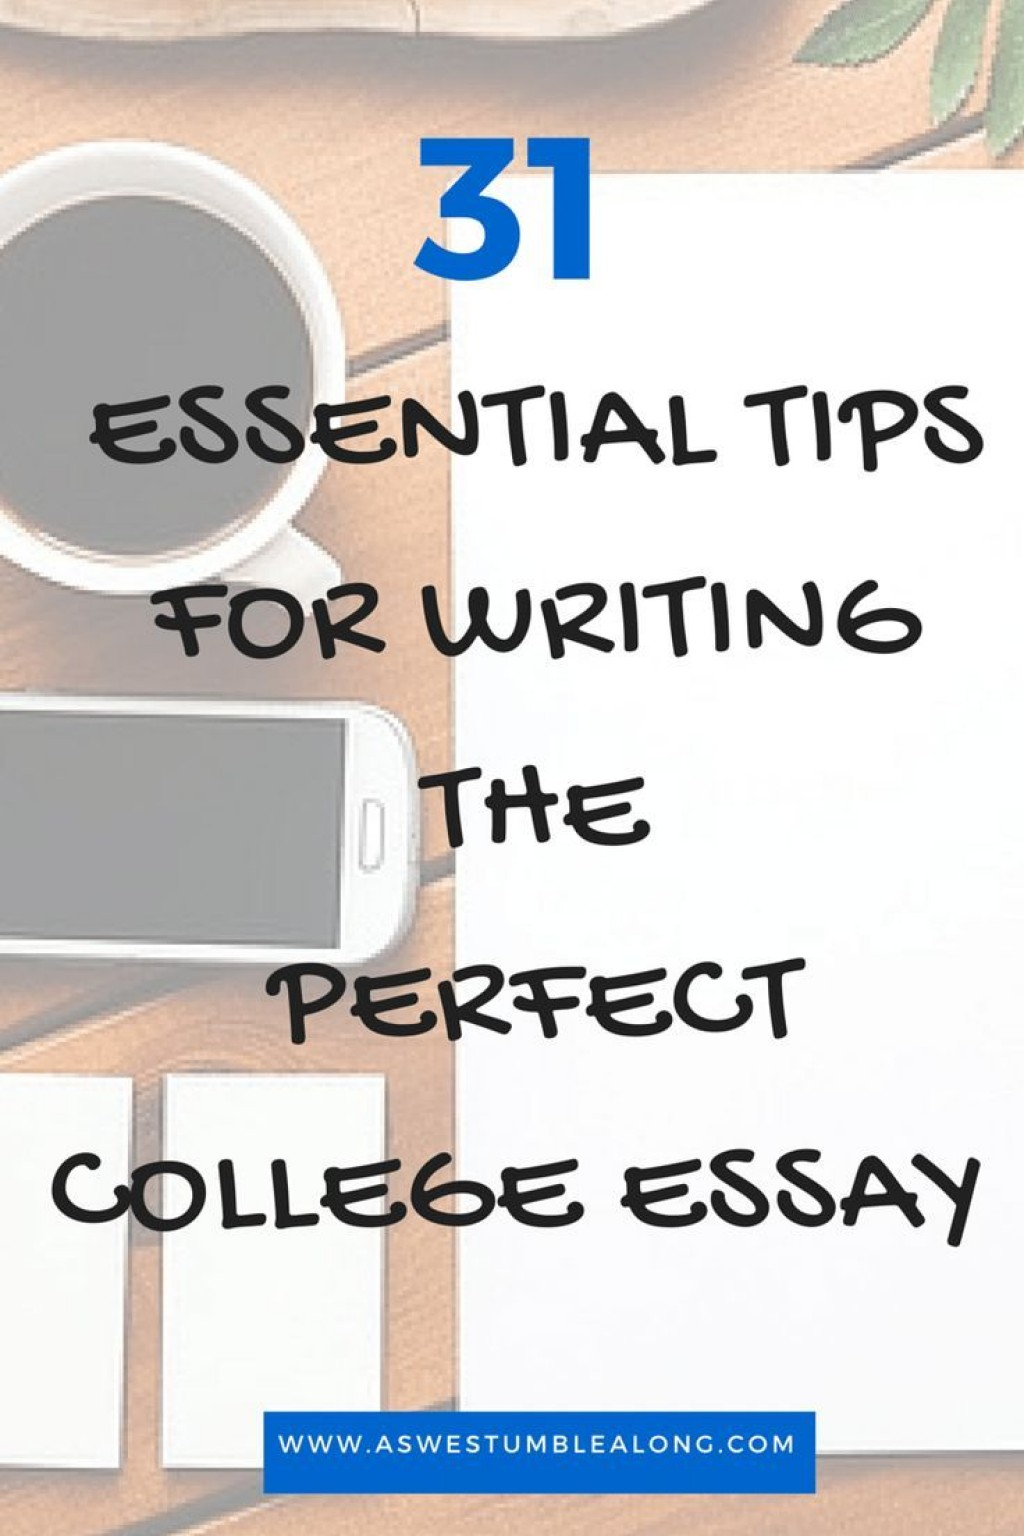 009 Colleges That Don T Require Essays Essay Example Excellent College Scholarships Do Not Best Don't Nc For Admission Large